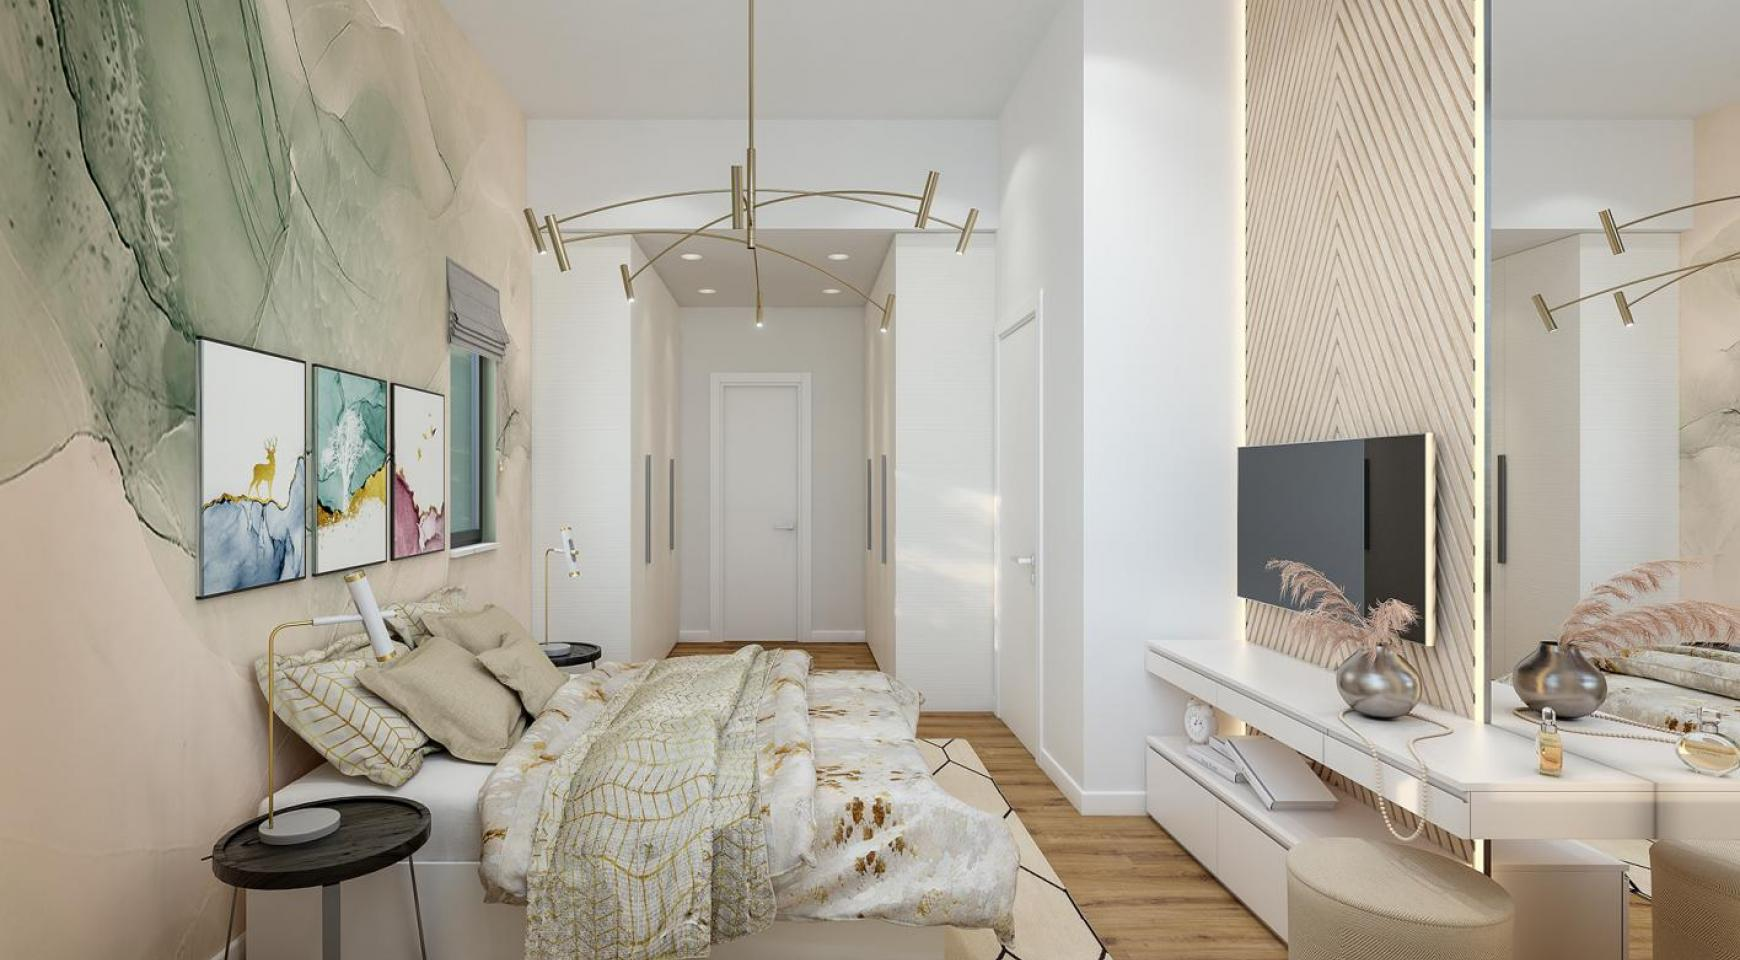 Urban City Residences, Block B. New Spacious 2 Bedroom Apartment 302 in the City Centre - 7